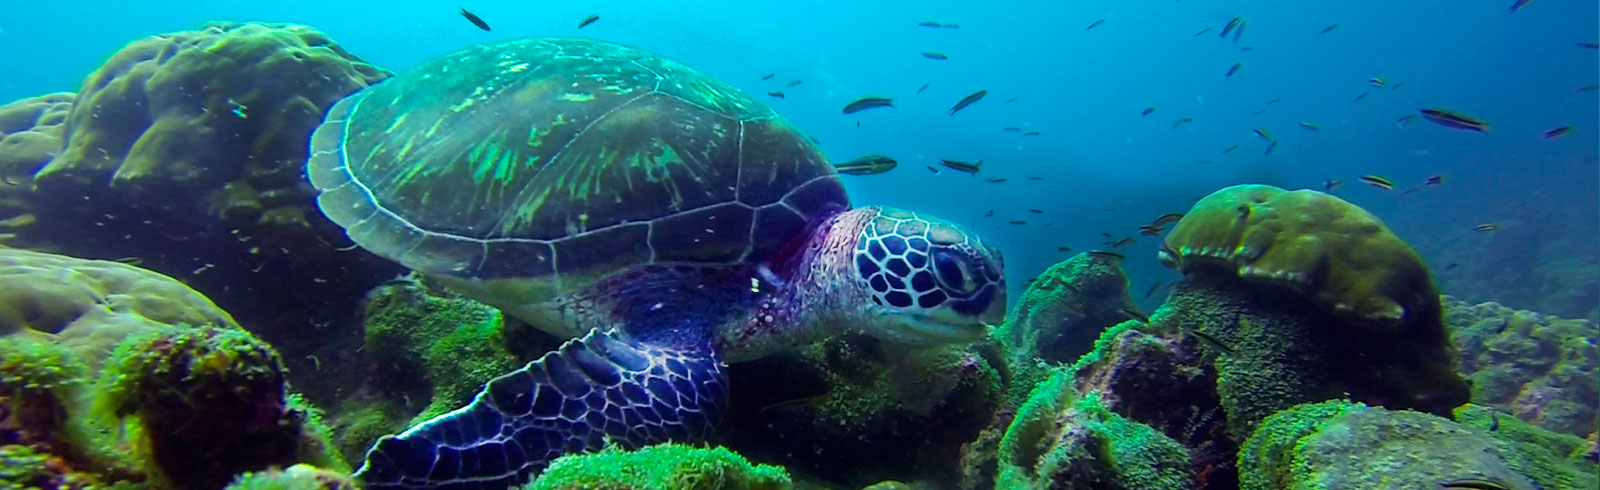 Reducing the Threats for Sea Turtles